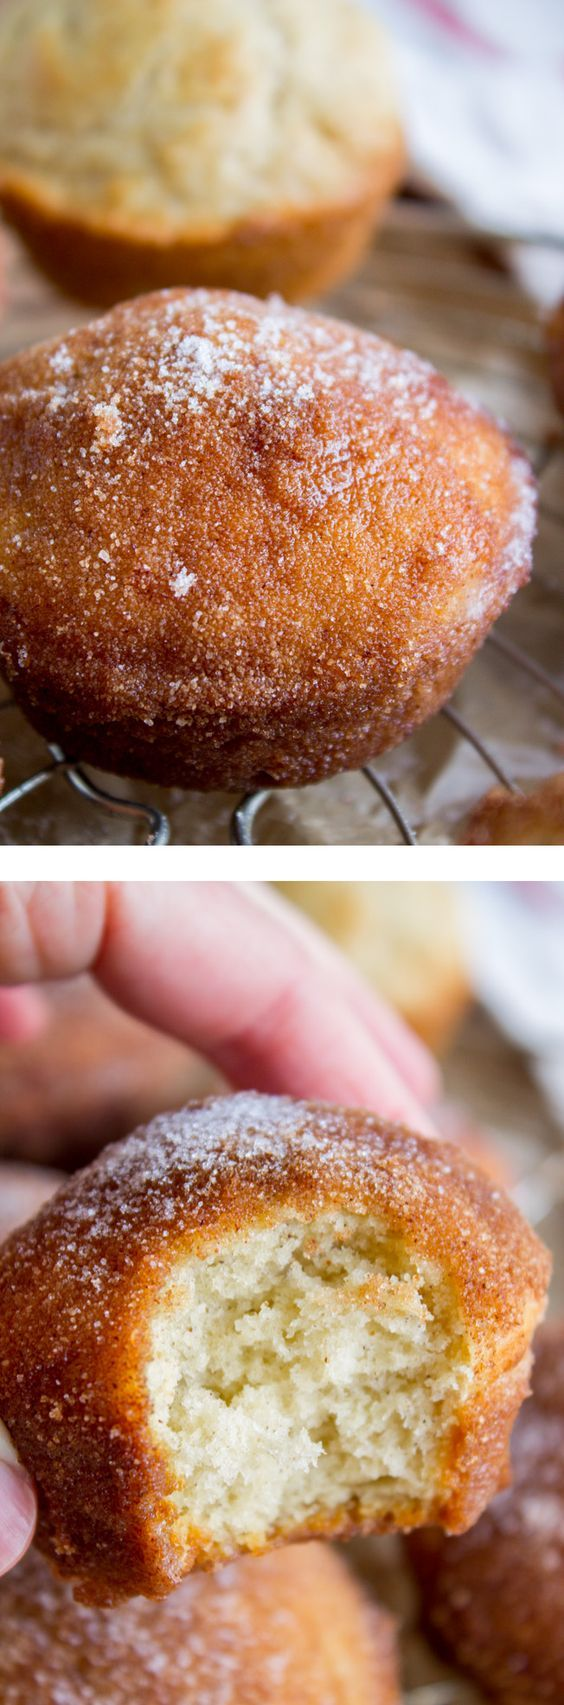 Did you make this recipe in Home Ec?? It's been around awhile, and with good reason because holy cow you dip the entire muffin in butter and then roll it all in cinnamon sugar. According to Betty Crocker, they are called French Breakfast Puffs. (...I think somebody in their test kitchen was feelin' fancy!) #muffins #cinnamon #sugar #snickerdoodle #puffs #bettycrocker #breakfast #easy #fast #quick #nutmeg